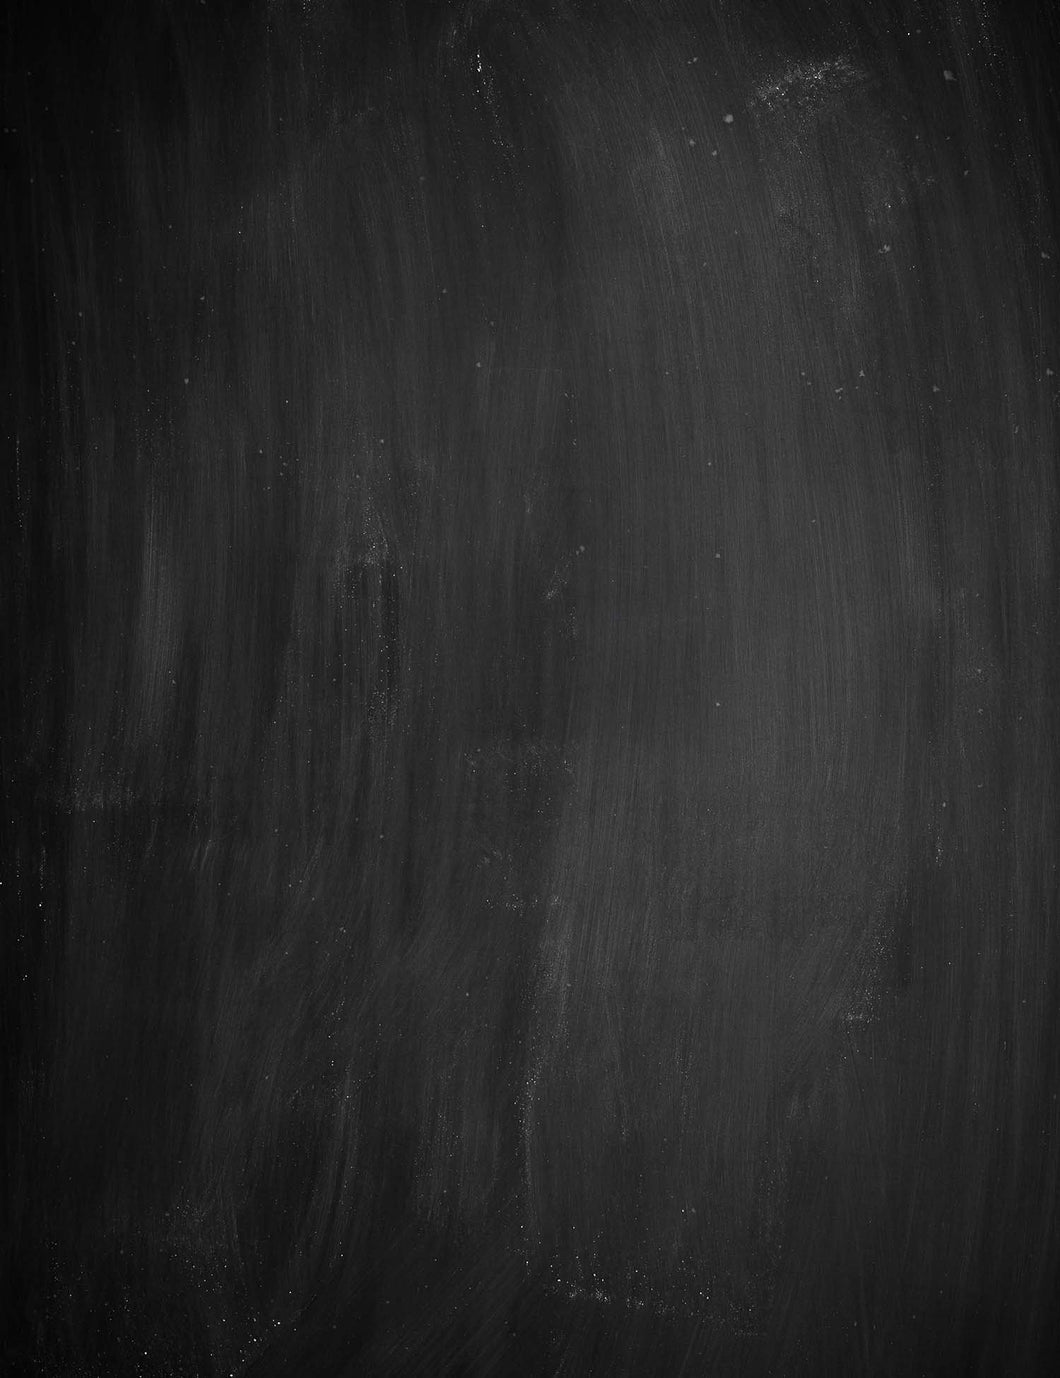 Texture Grunge Chalkboard Old Master Backdrop For Baby Photography - Shop Backdrop